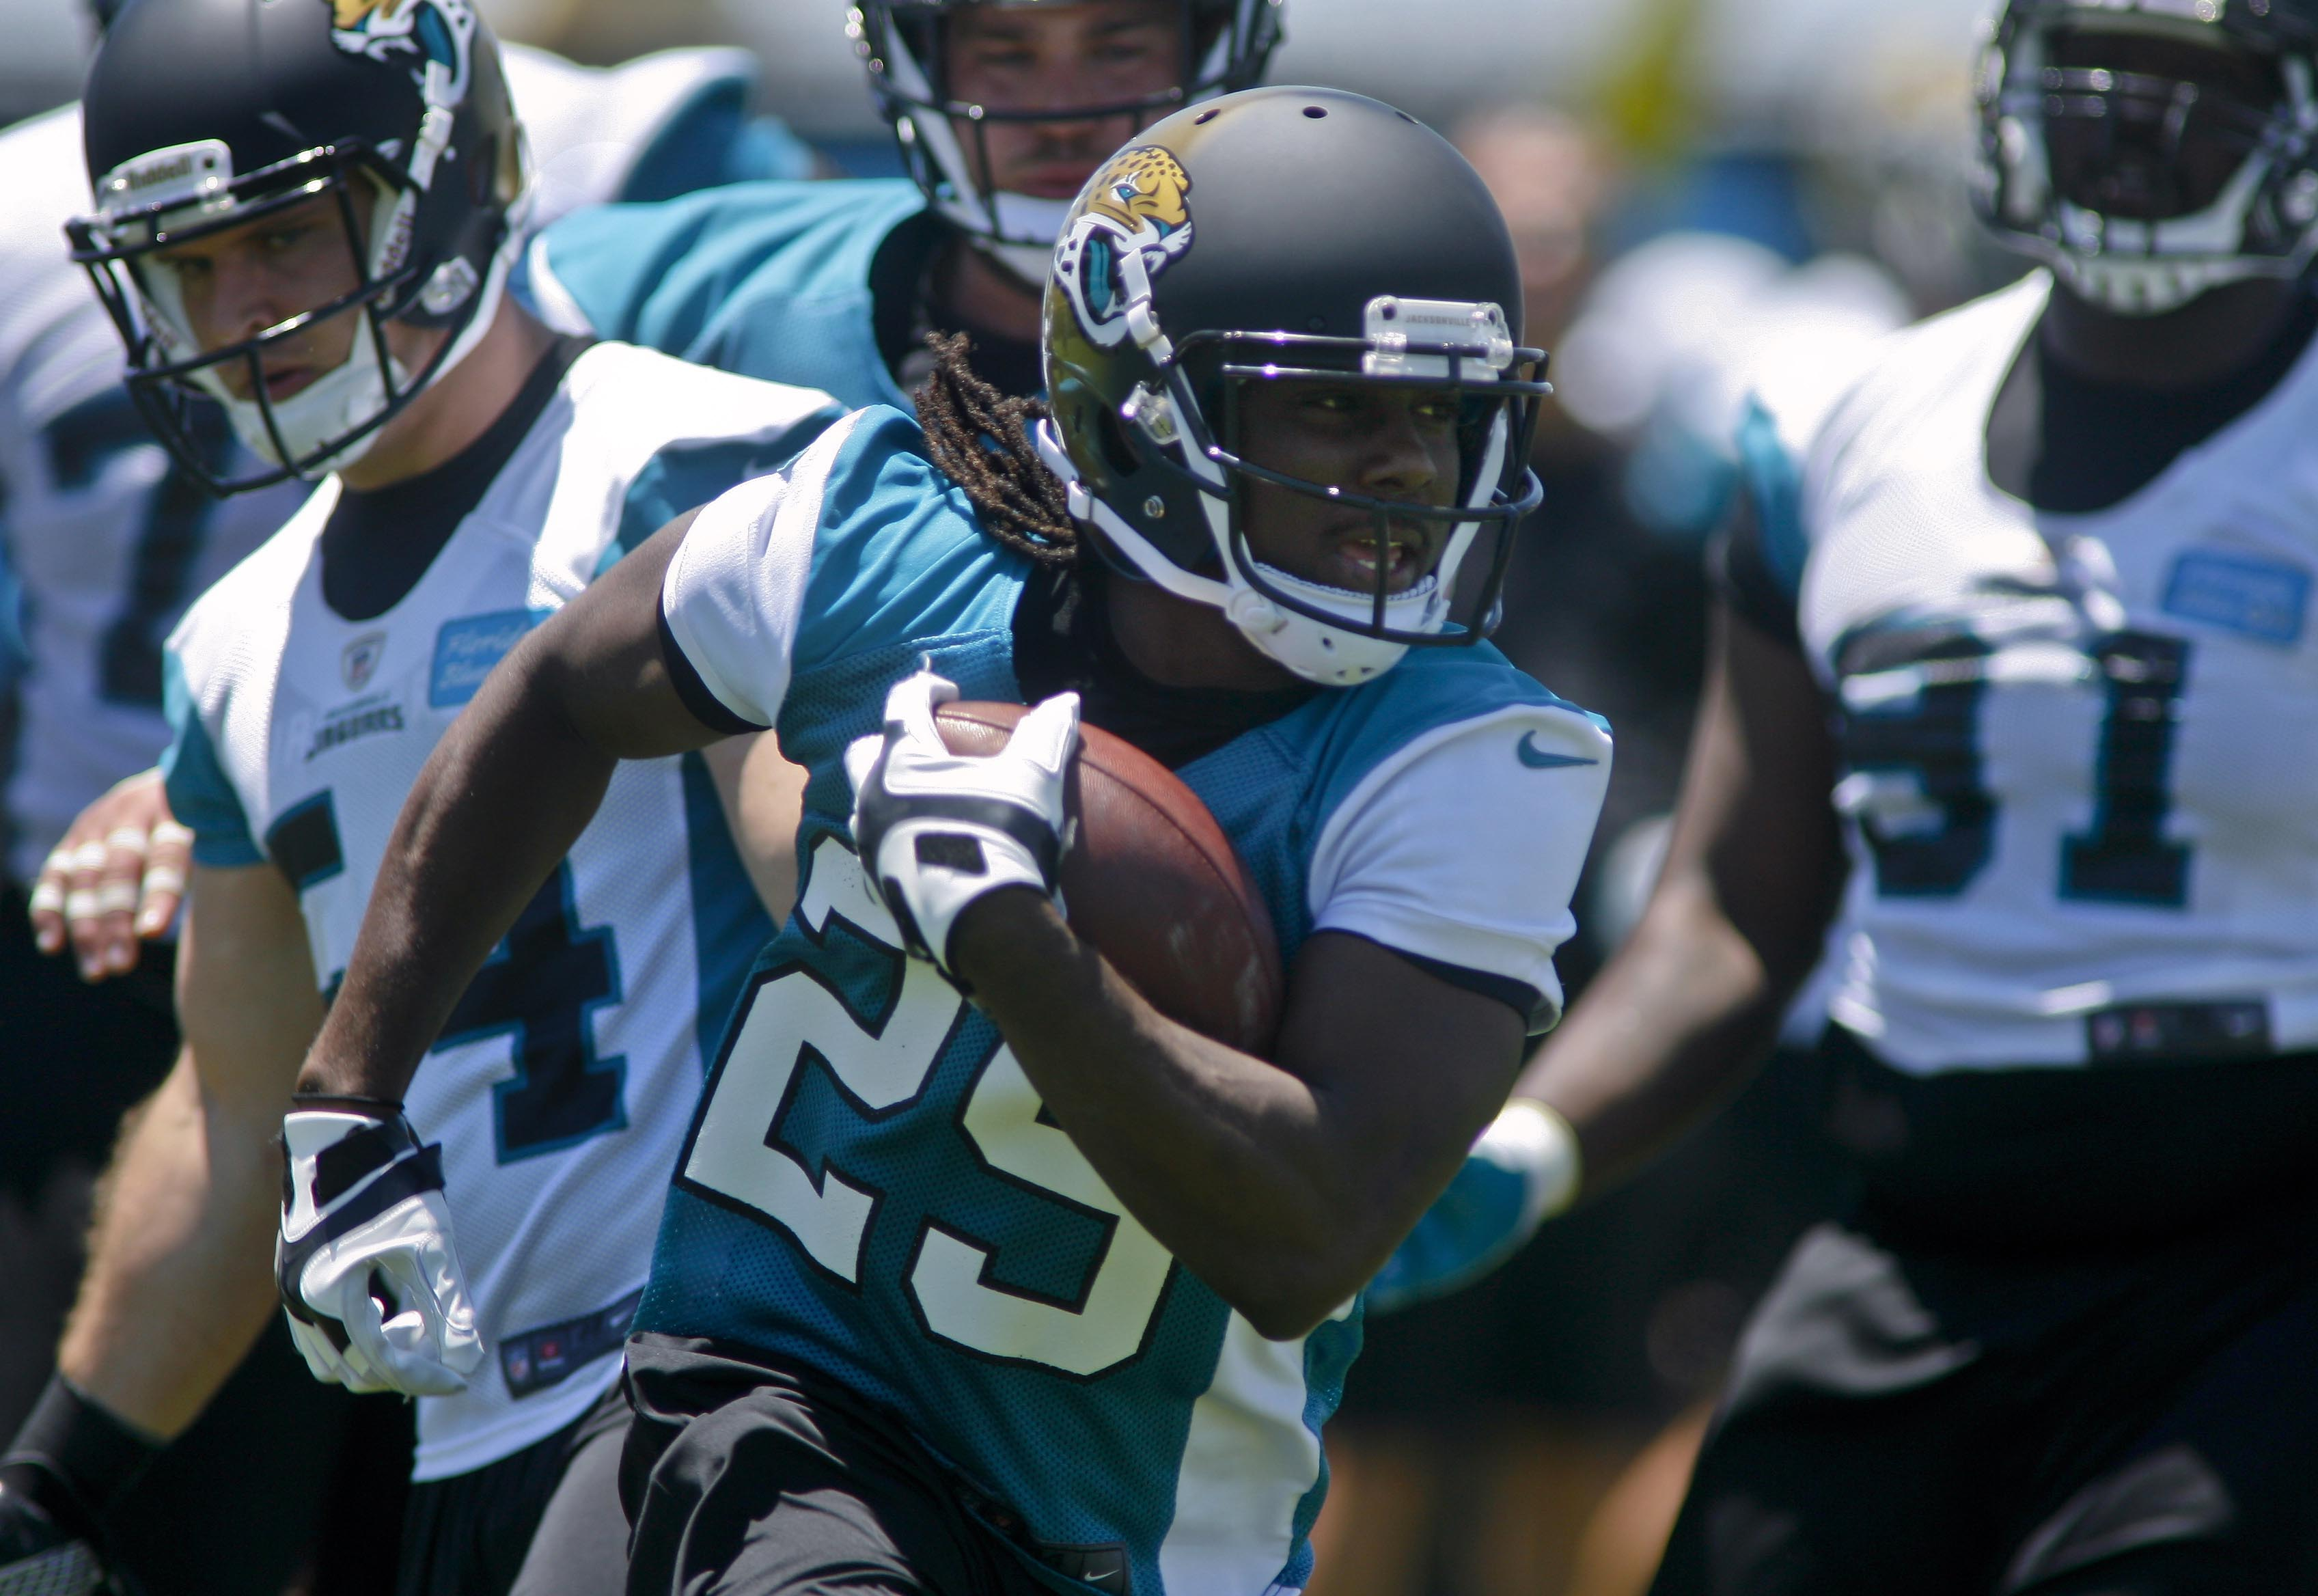 Denard Robinson (29) is adapting to life in the NFL as a running back and receiver. (USAT Sports)